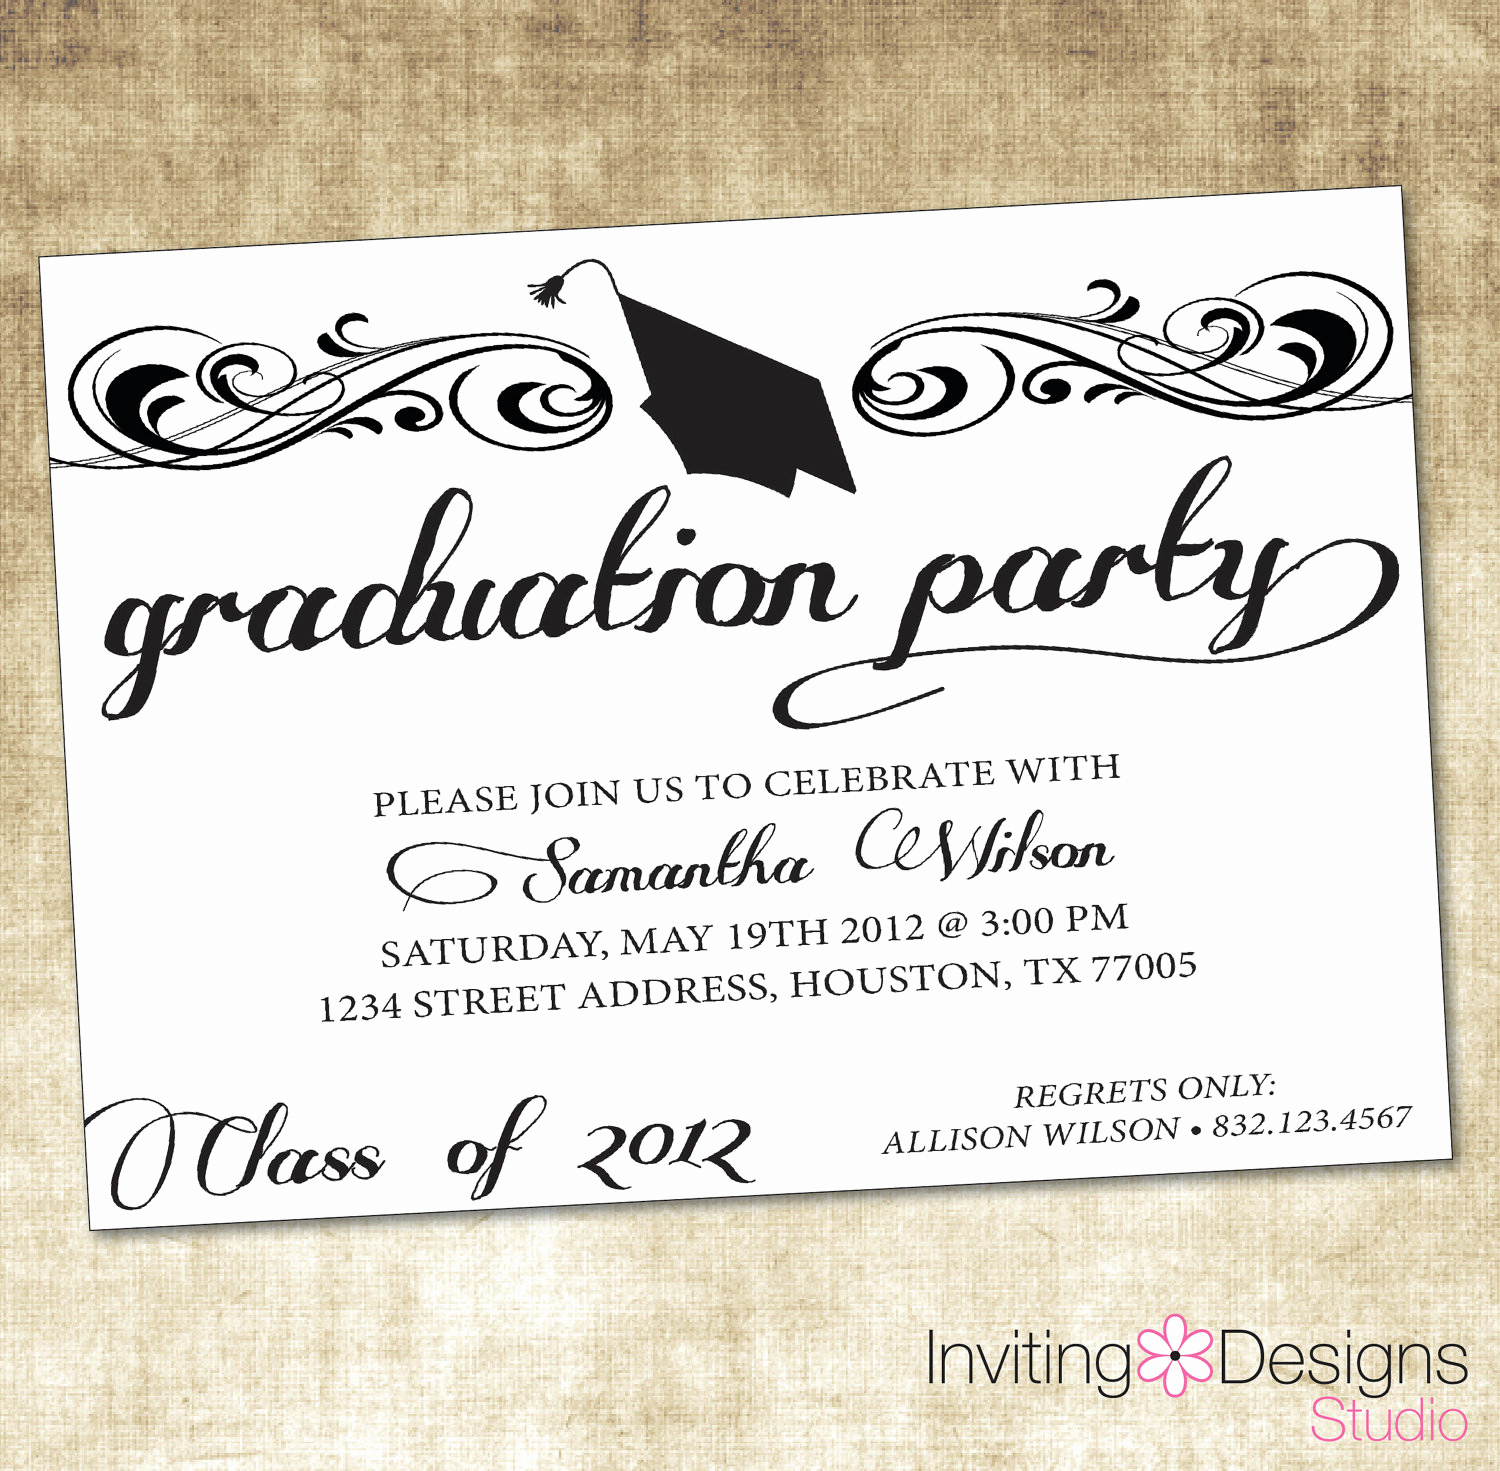 Graduation Party Invitation Cards Elegant Quotes for Graduation Party Invitations Quotesgram